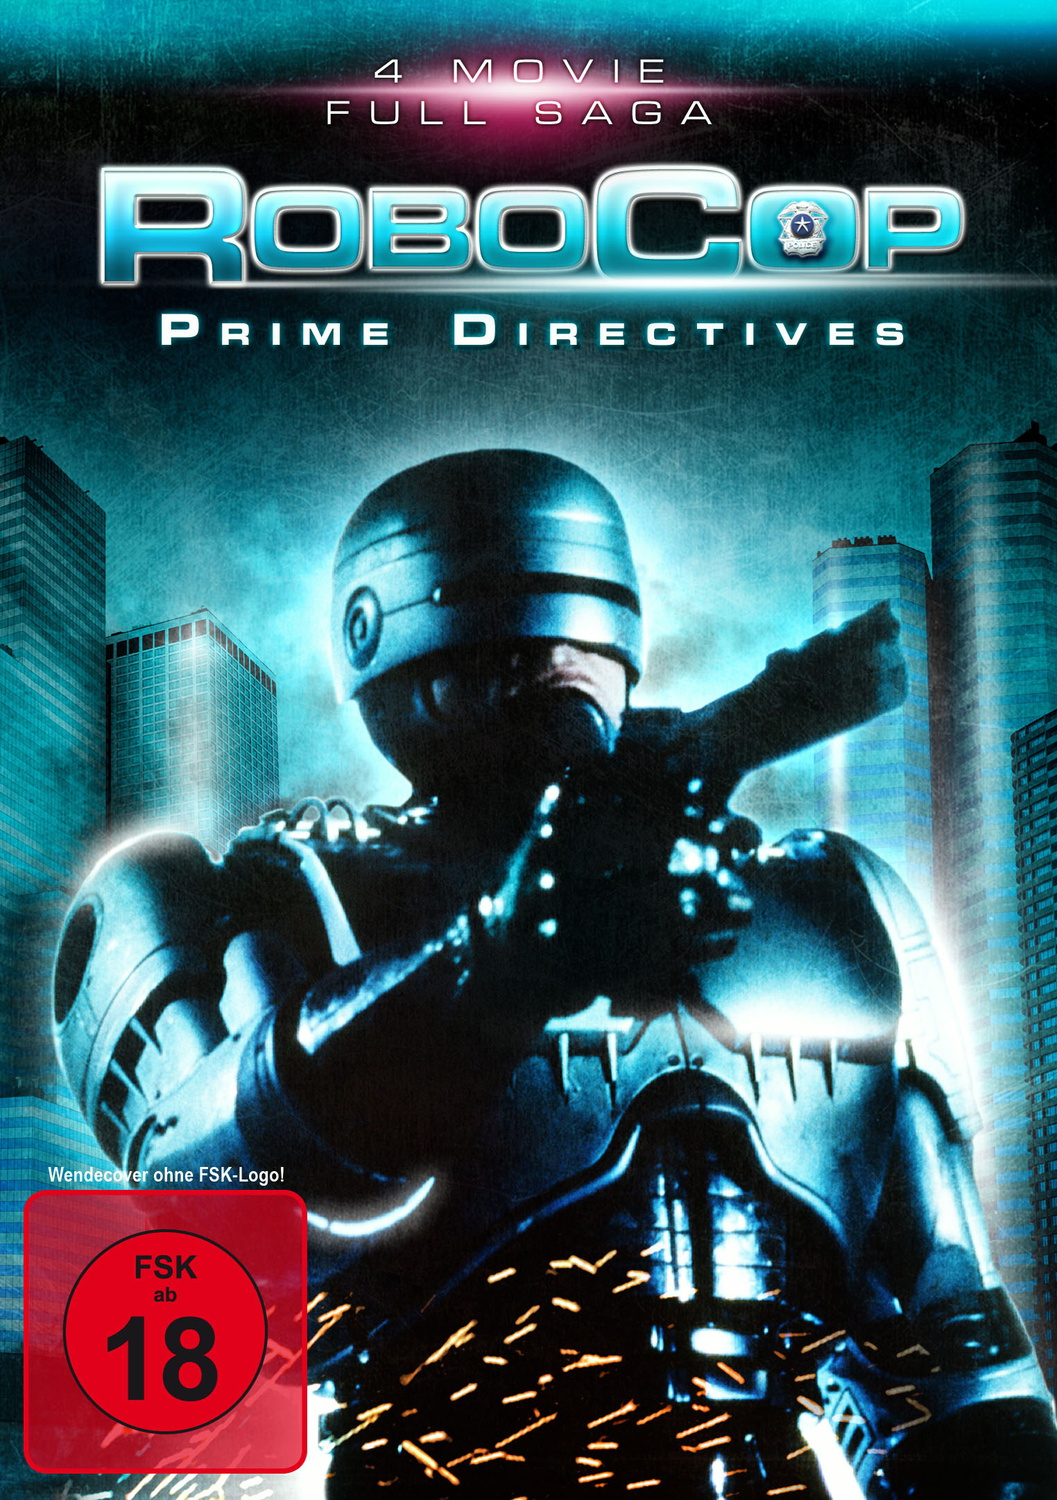 RoboCop Prime Directives - The Full Saga [2 DVDs]